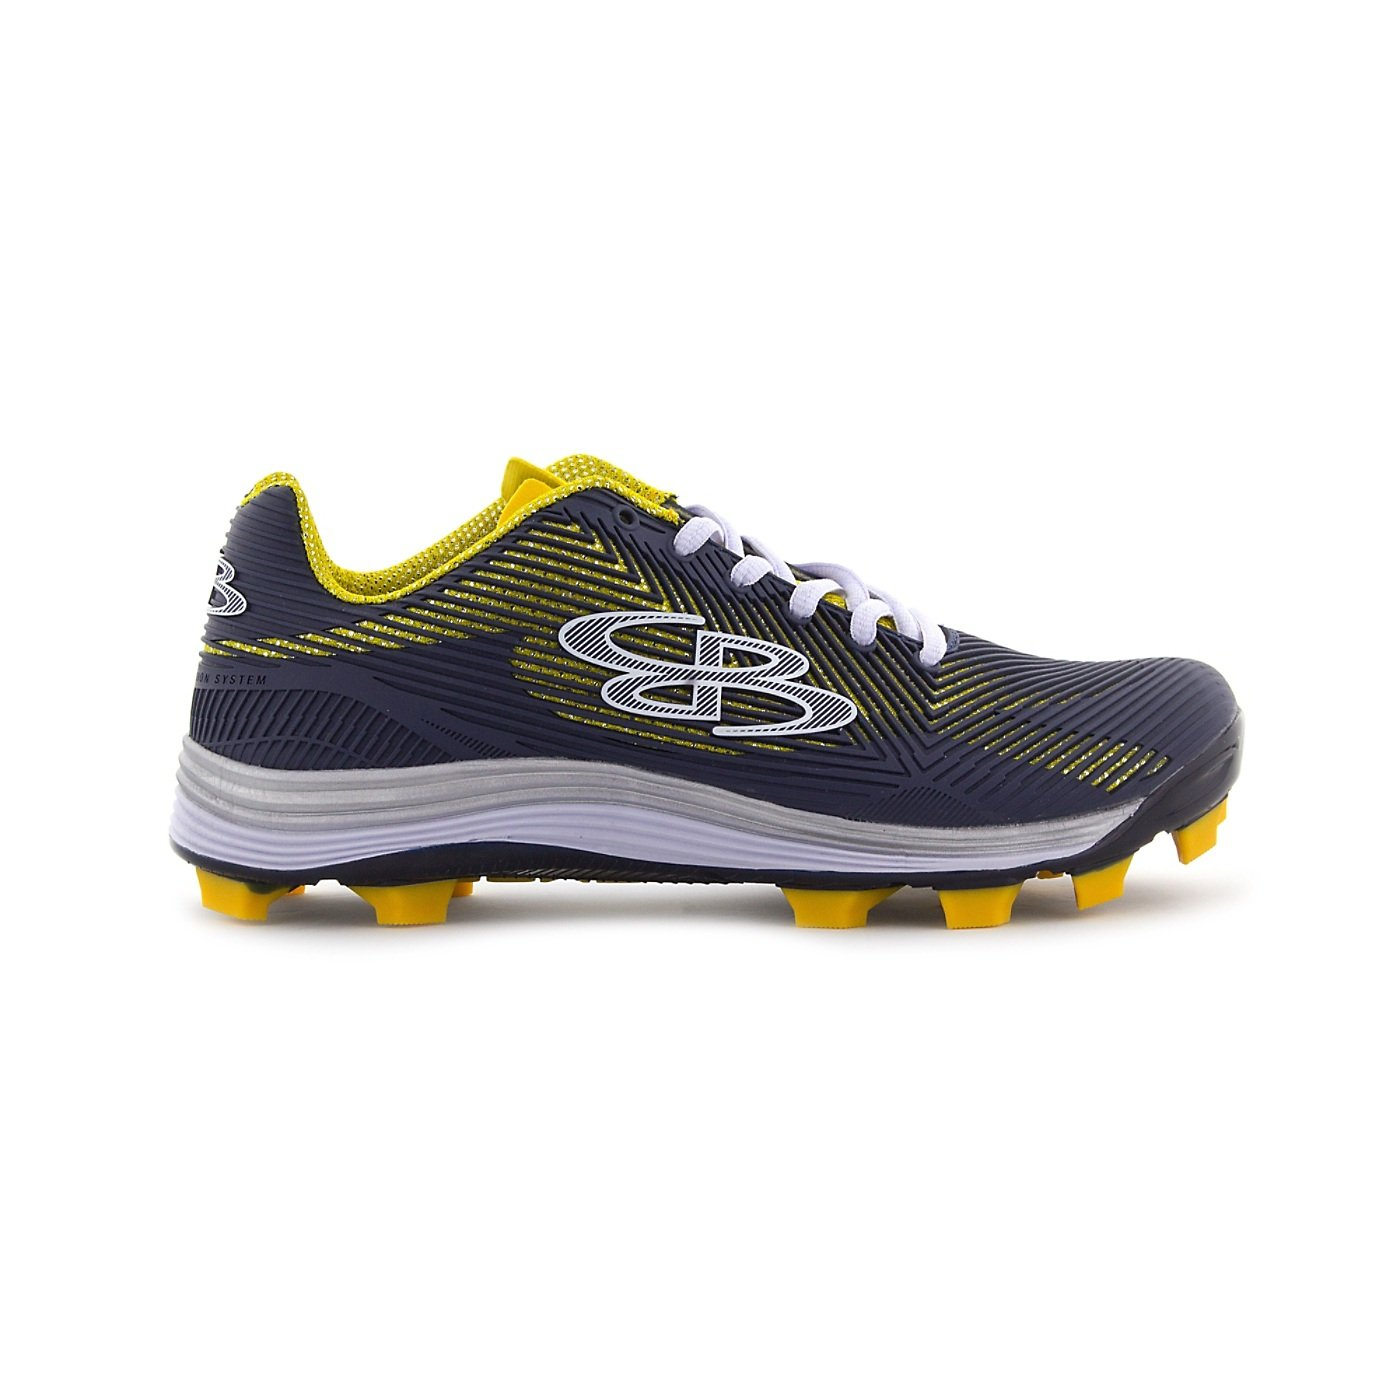 Boombah Women's Spotlight Molded Cleat Navy/Gold - Size 10.5 by Boombah